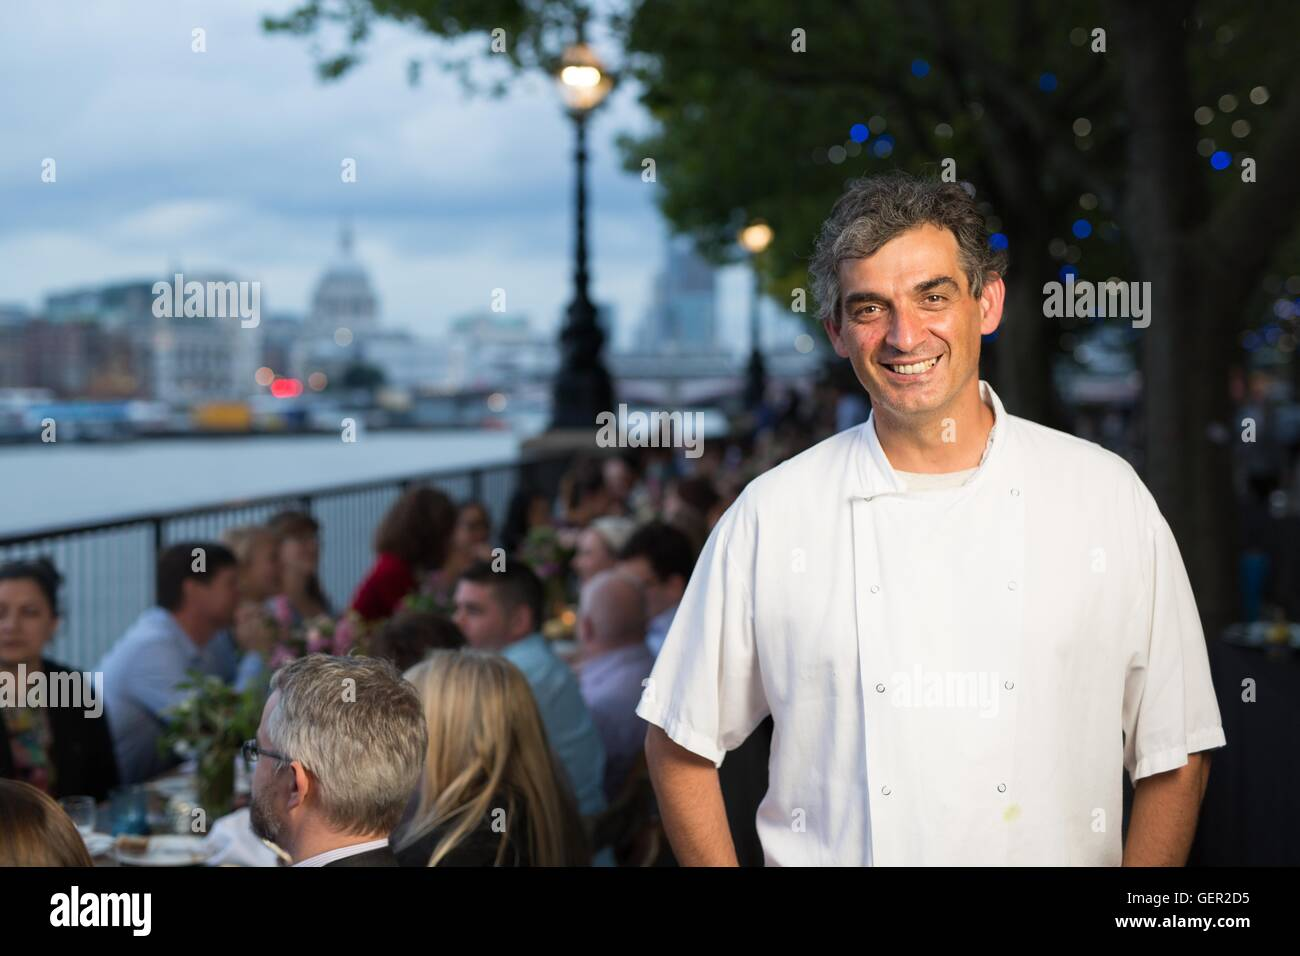 EDITORIAL USE ONLY Bruno Loubet head chef at Grainstore attends La Maison Maille Â'La Rive GaucheÂ' on - Stock Image